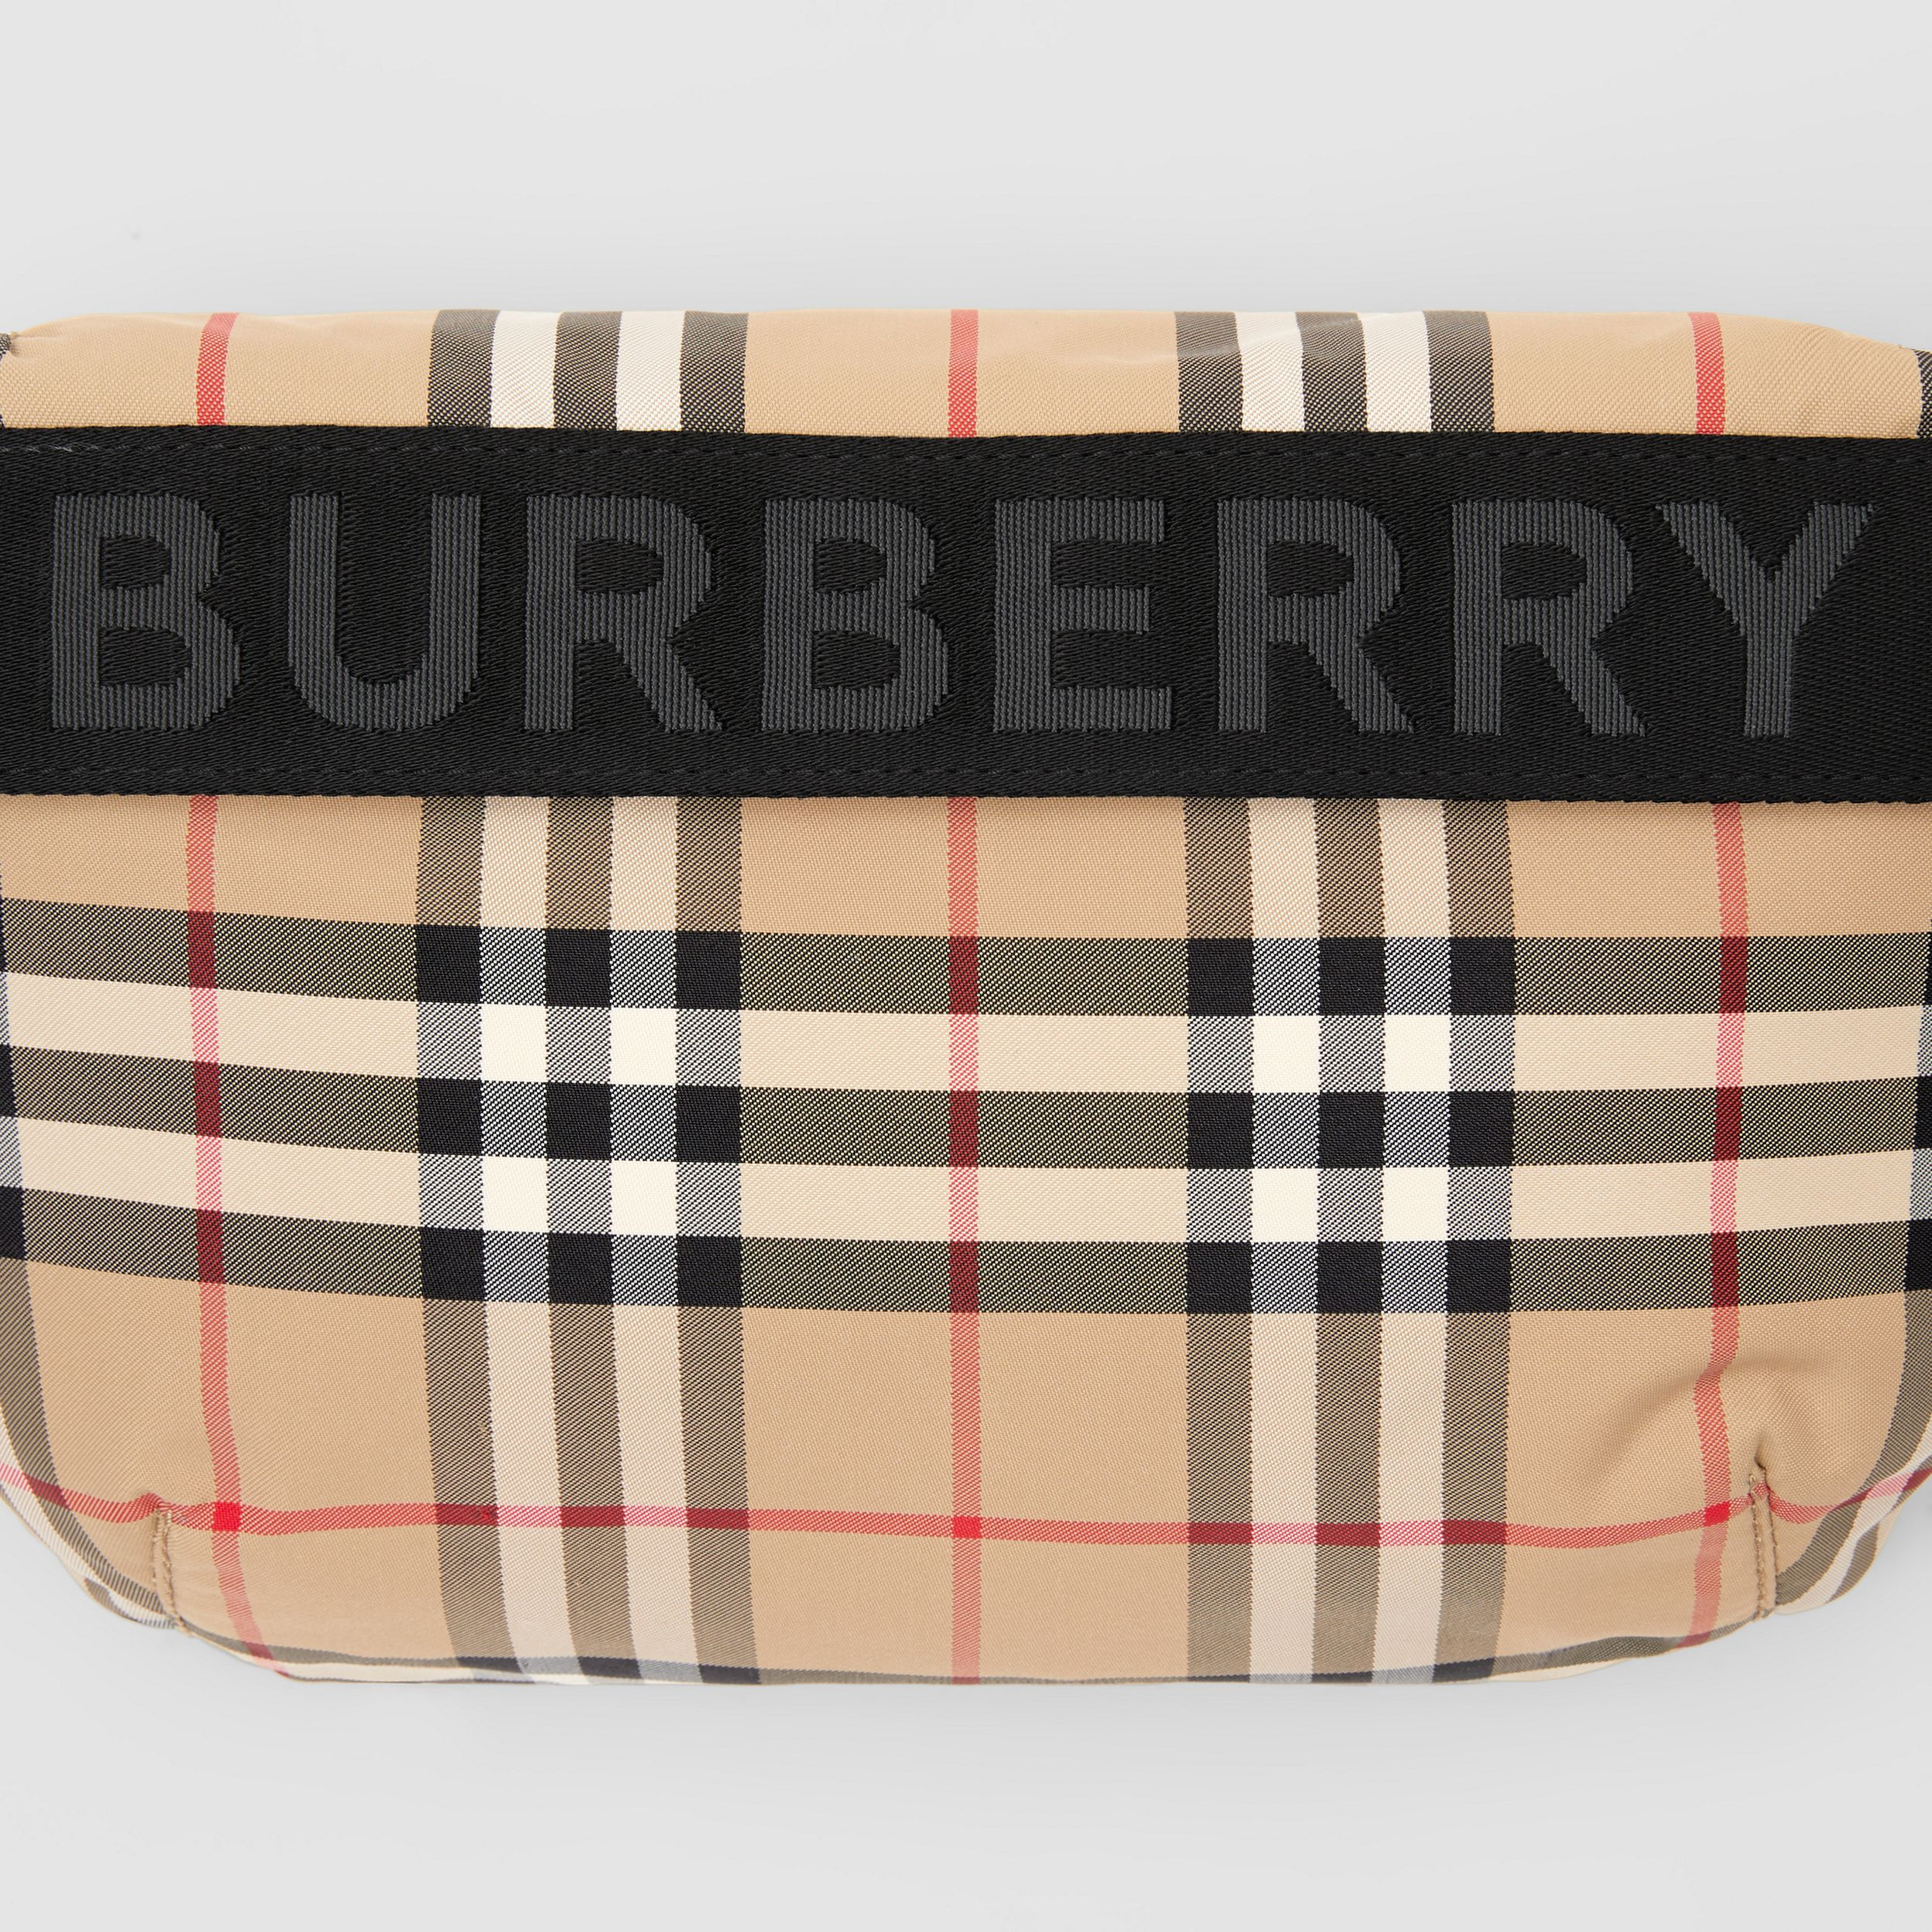 Medium Vintage Check and Icon Stripe Bum Bag in Archive Beige | Burberry - 2